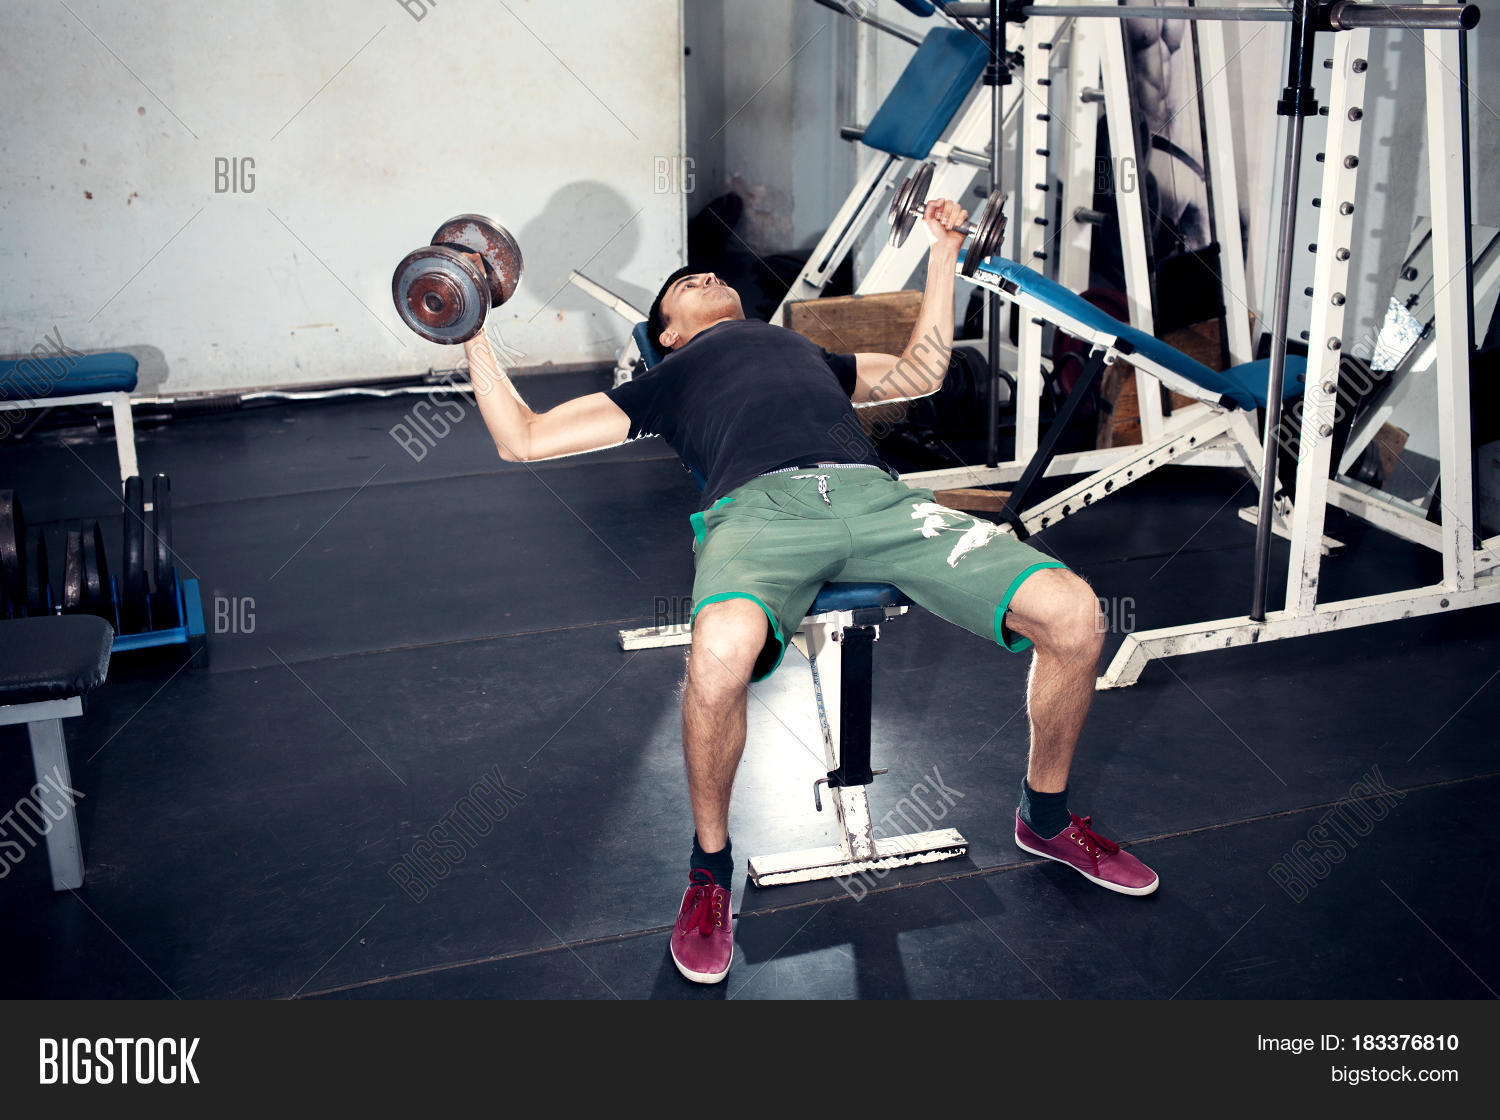 Exercise dumbbells image & photo free trial bigstock